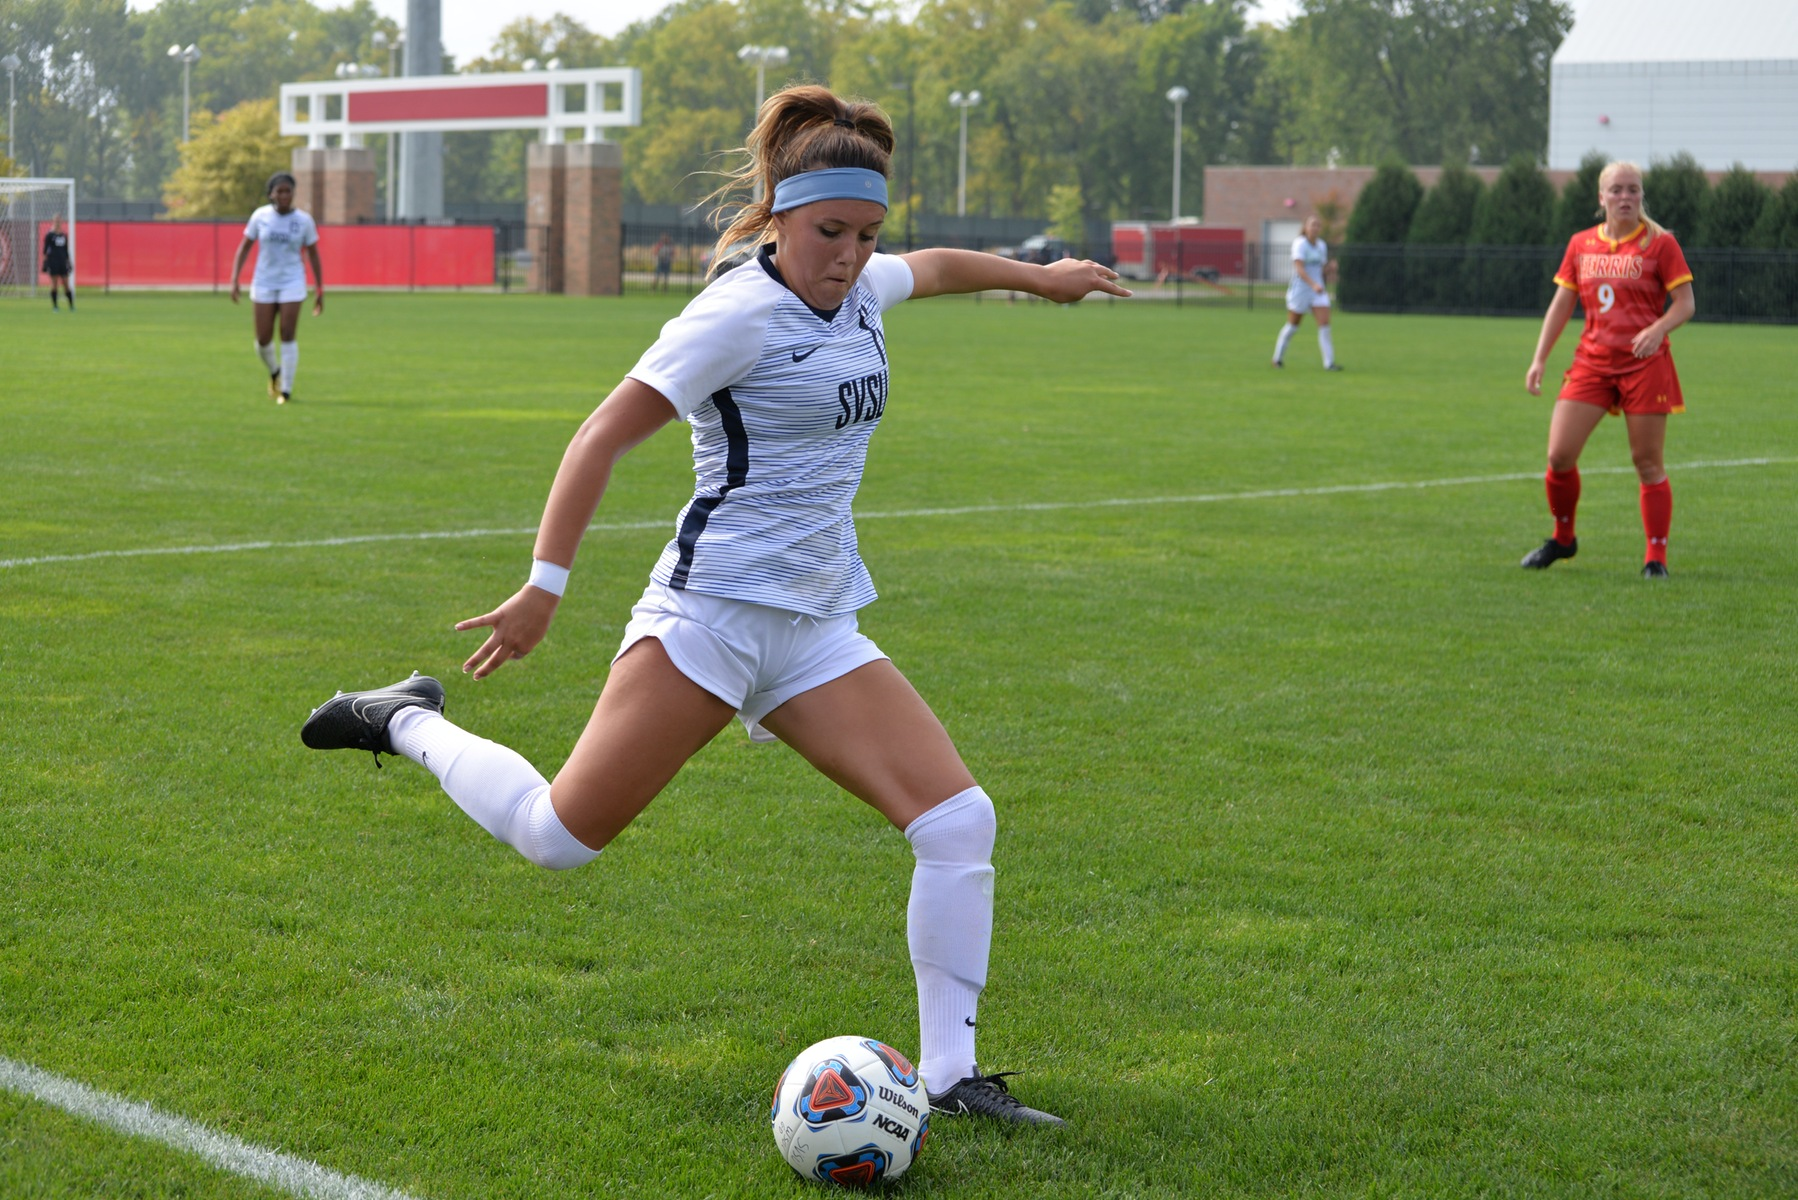 Saginaw Valley Falls in Regional Action to Ferris State, 2-1